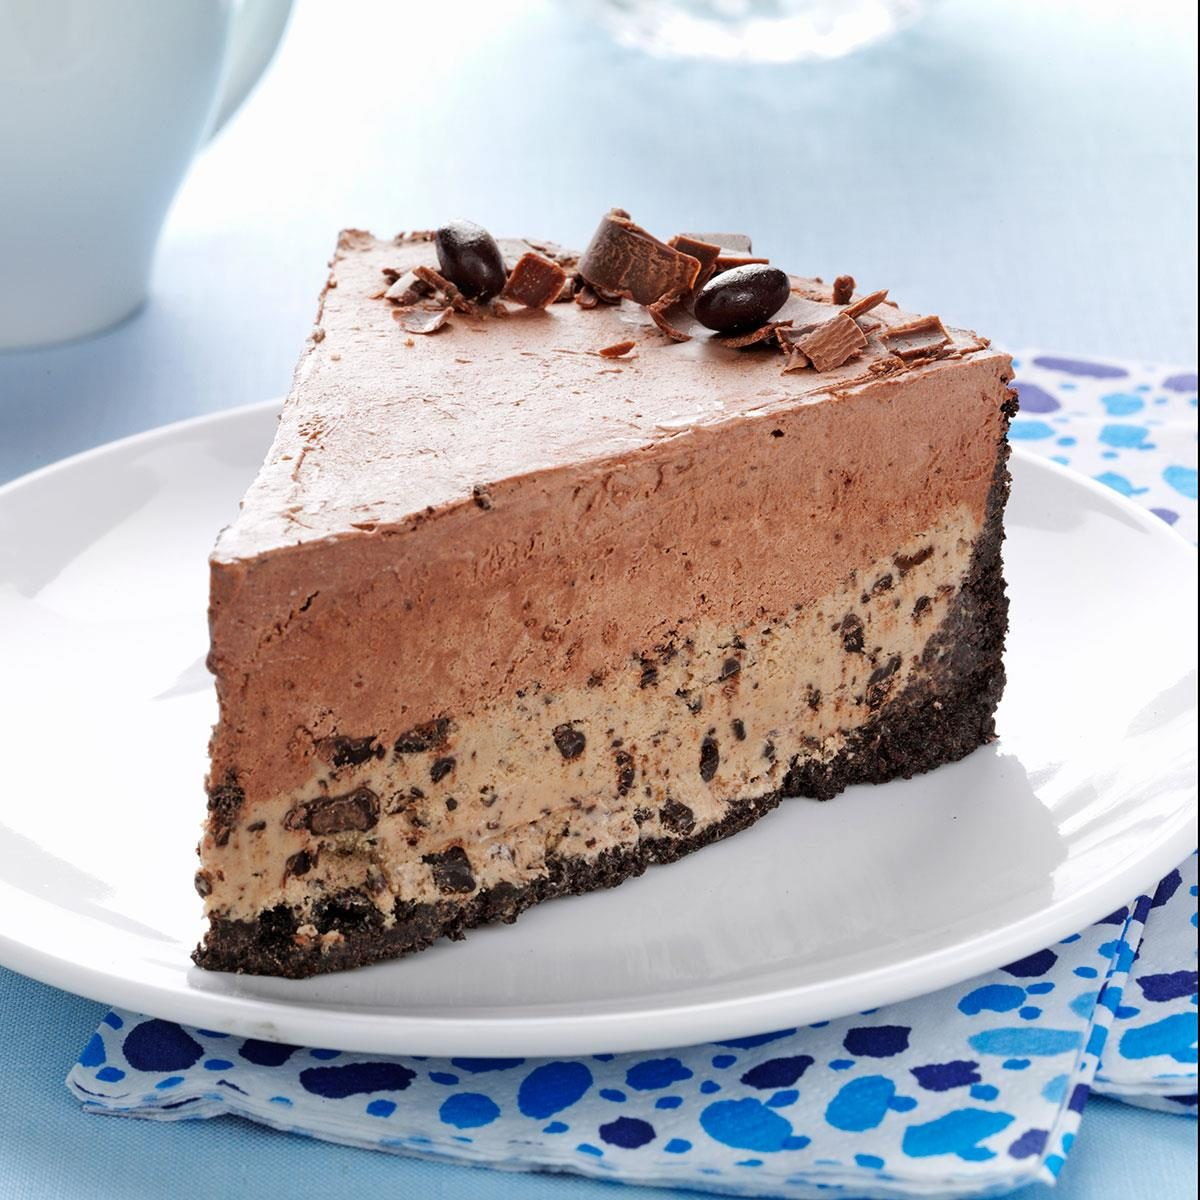 Chocolate Mocha Ice Cream Cake Recipe